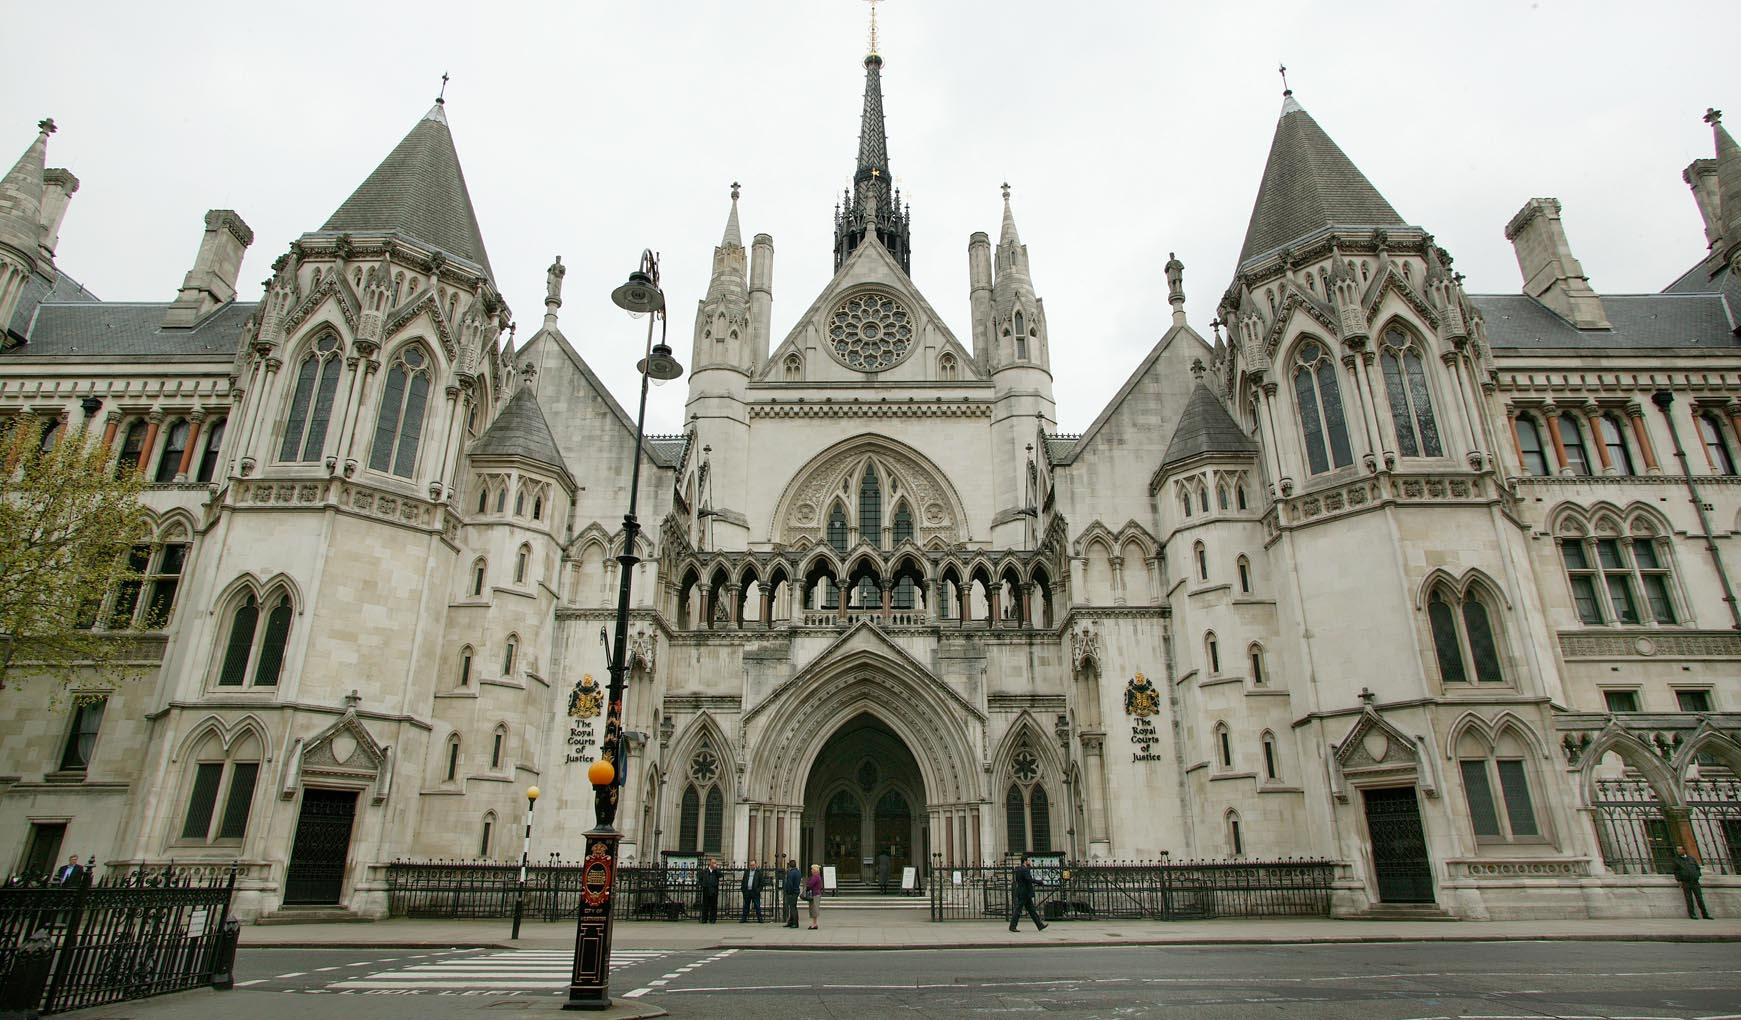 COURT OF APPEAL UPDATE - West Brom Tracker case